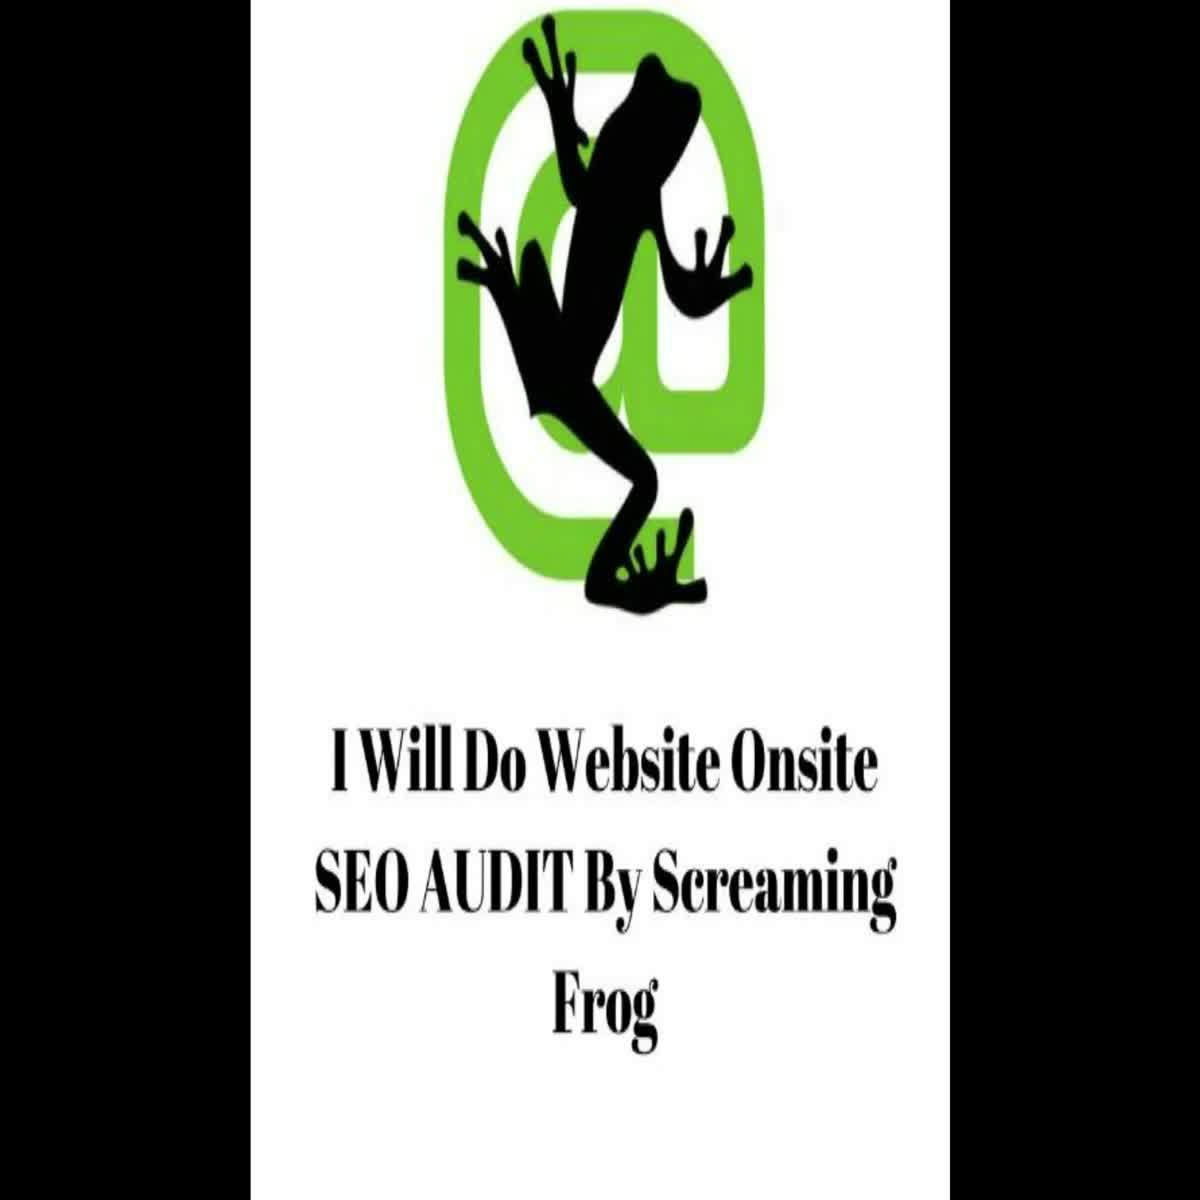 I Will do website onsite SEO AUDIT by Screaming Frog